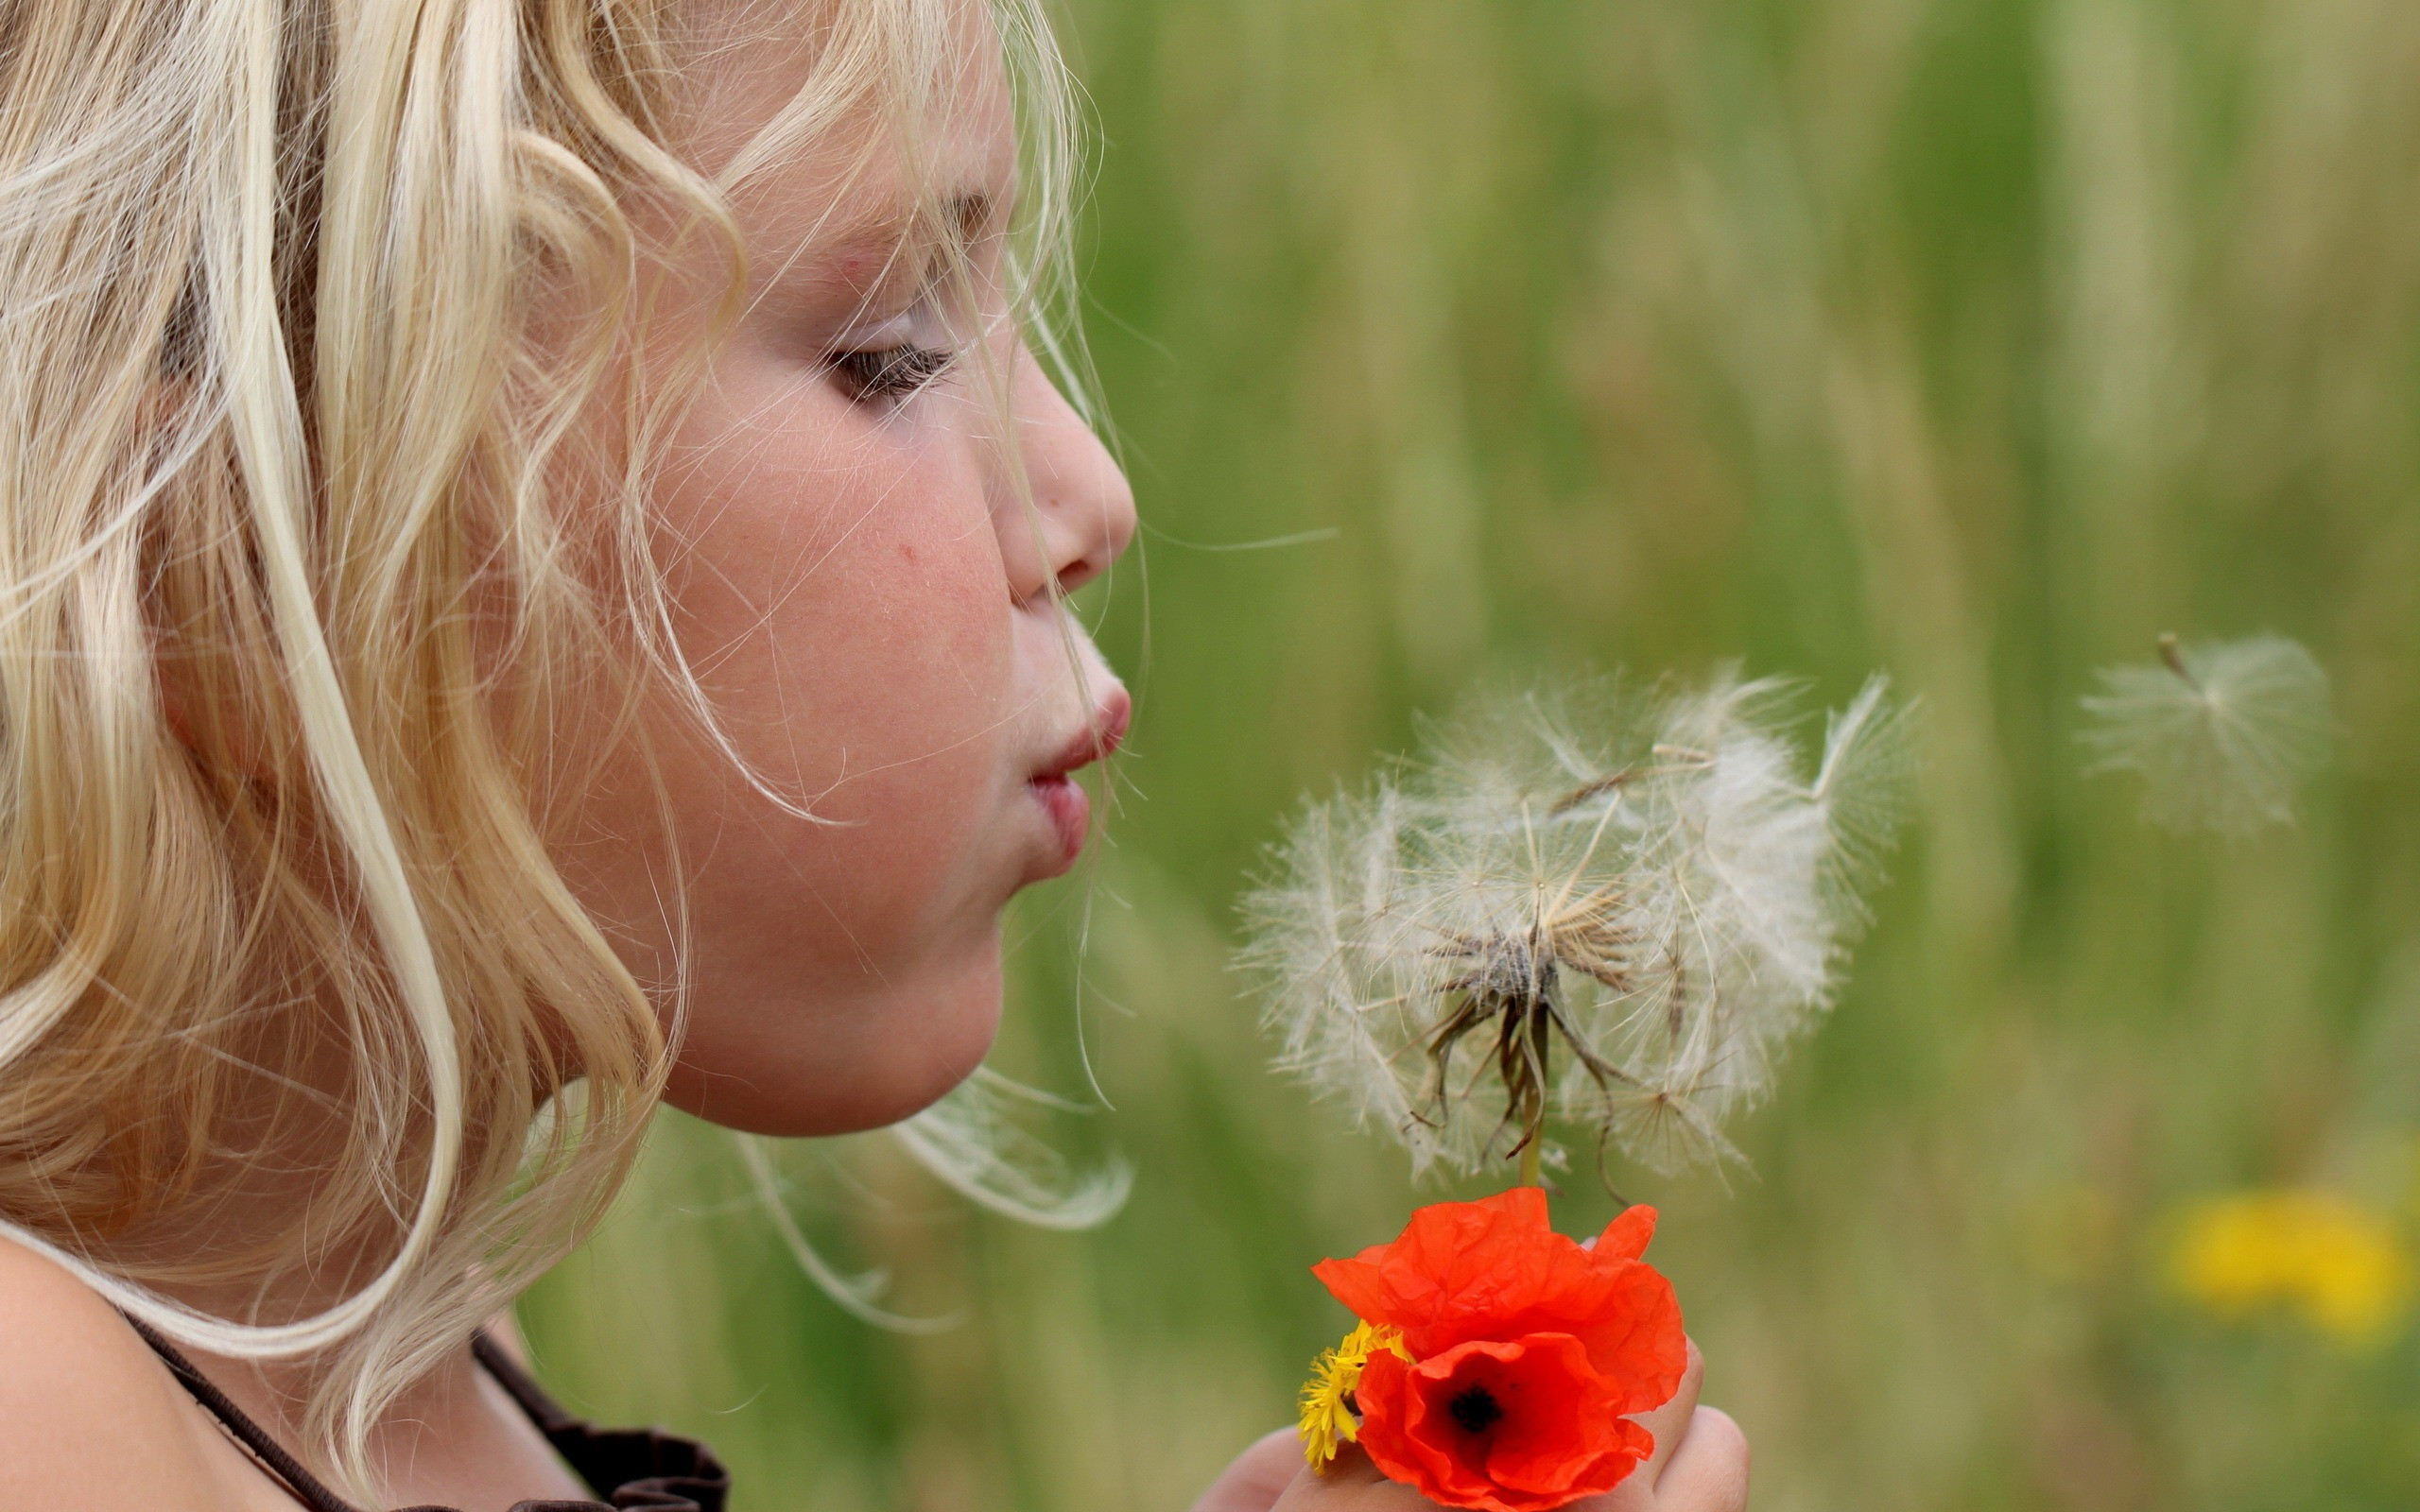 Girl blowing on a dandelion flower wallpapers and images - wallpapers ...